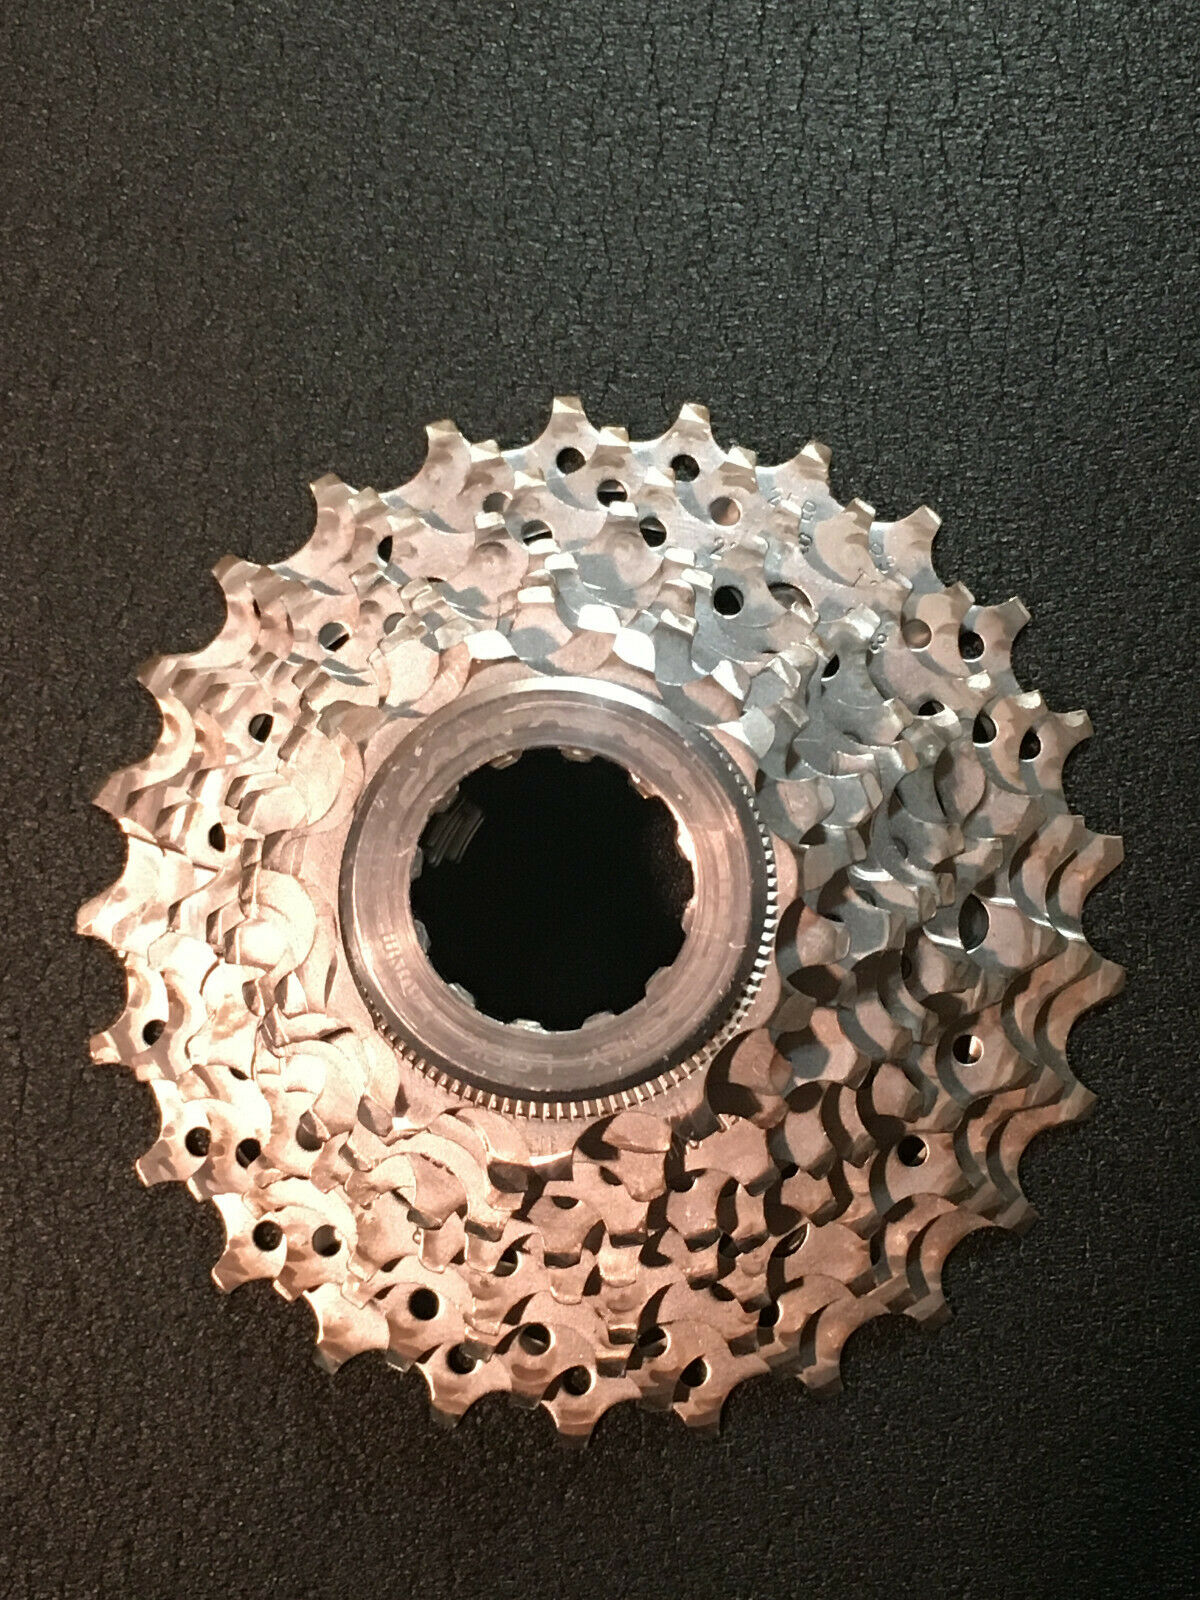 Campagnolo 11 speed Record Titanium  Cassette 11-25T Used  creative products